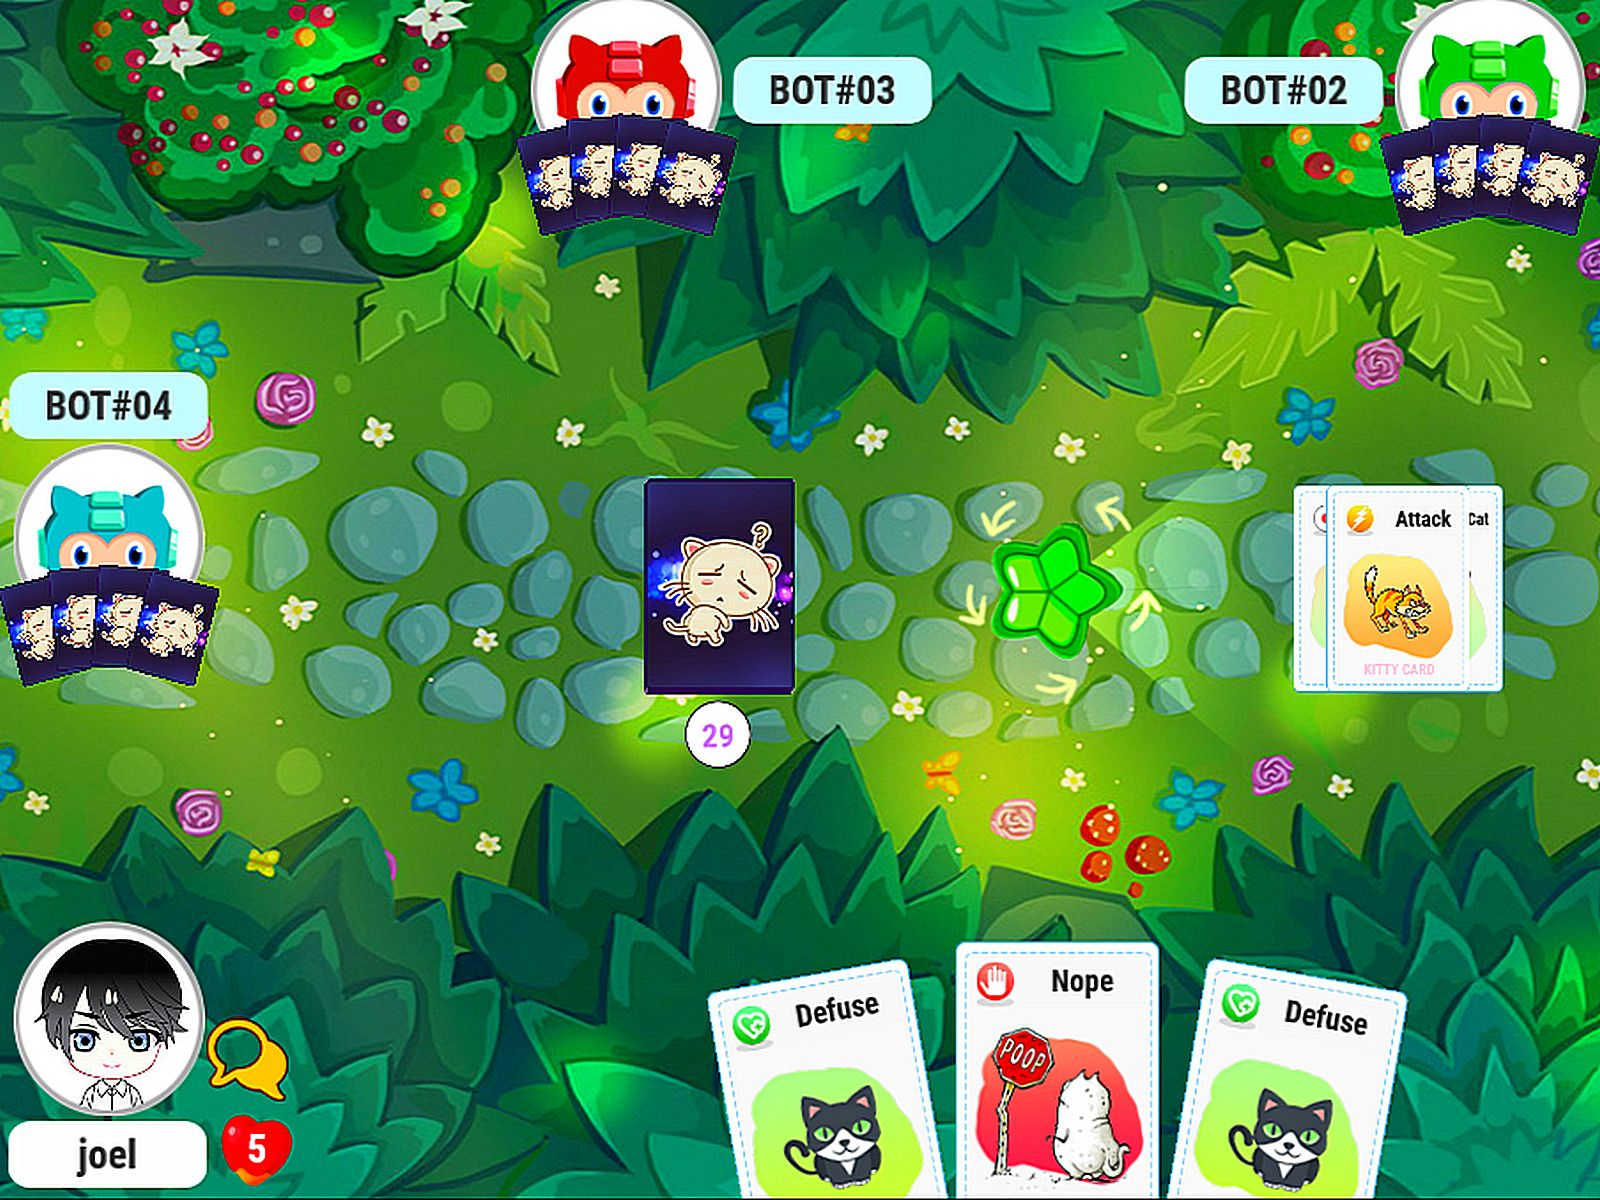 Game Of The Day Kitty Cards An Indie Game Inspired By Exploding Kittens Kitty Cards By Migame Players Are Given 5 C Card Games Magic Cards Online Card Games